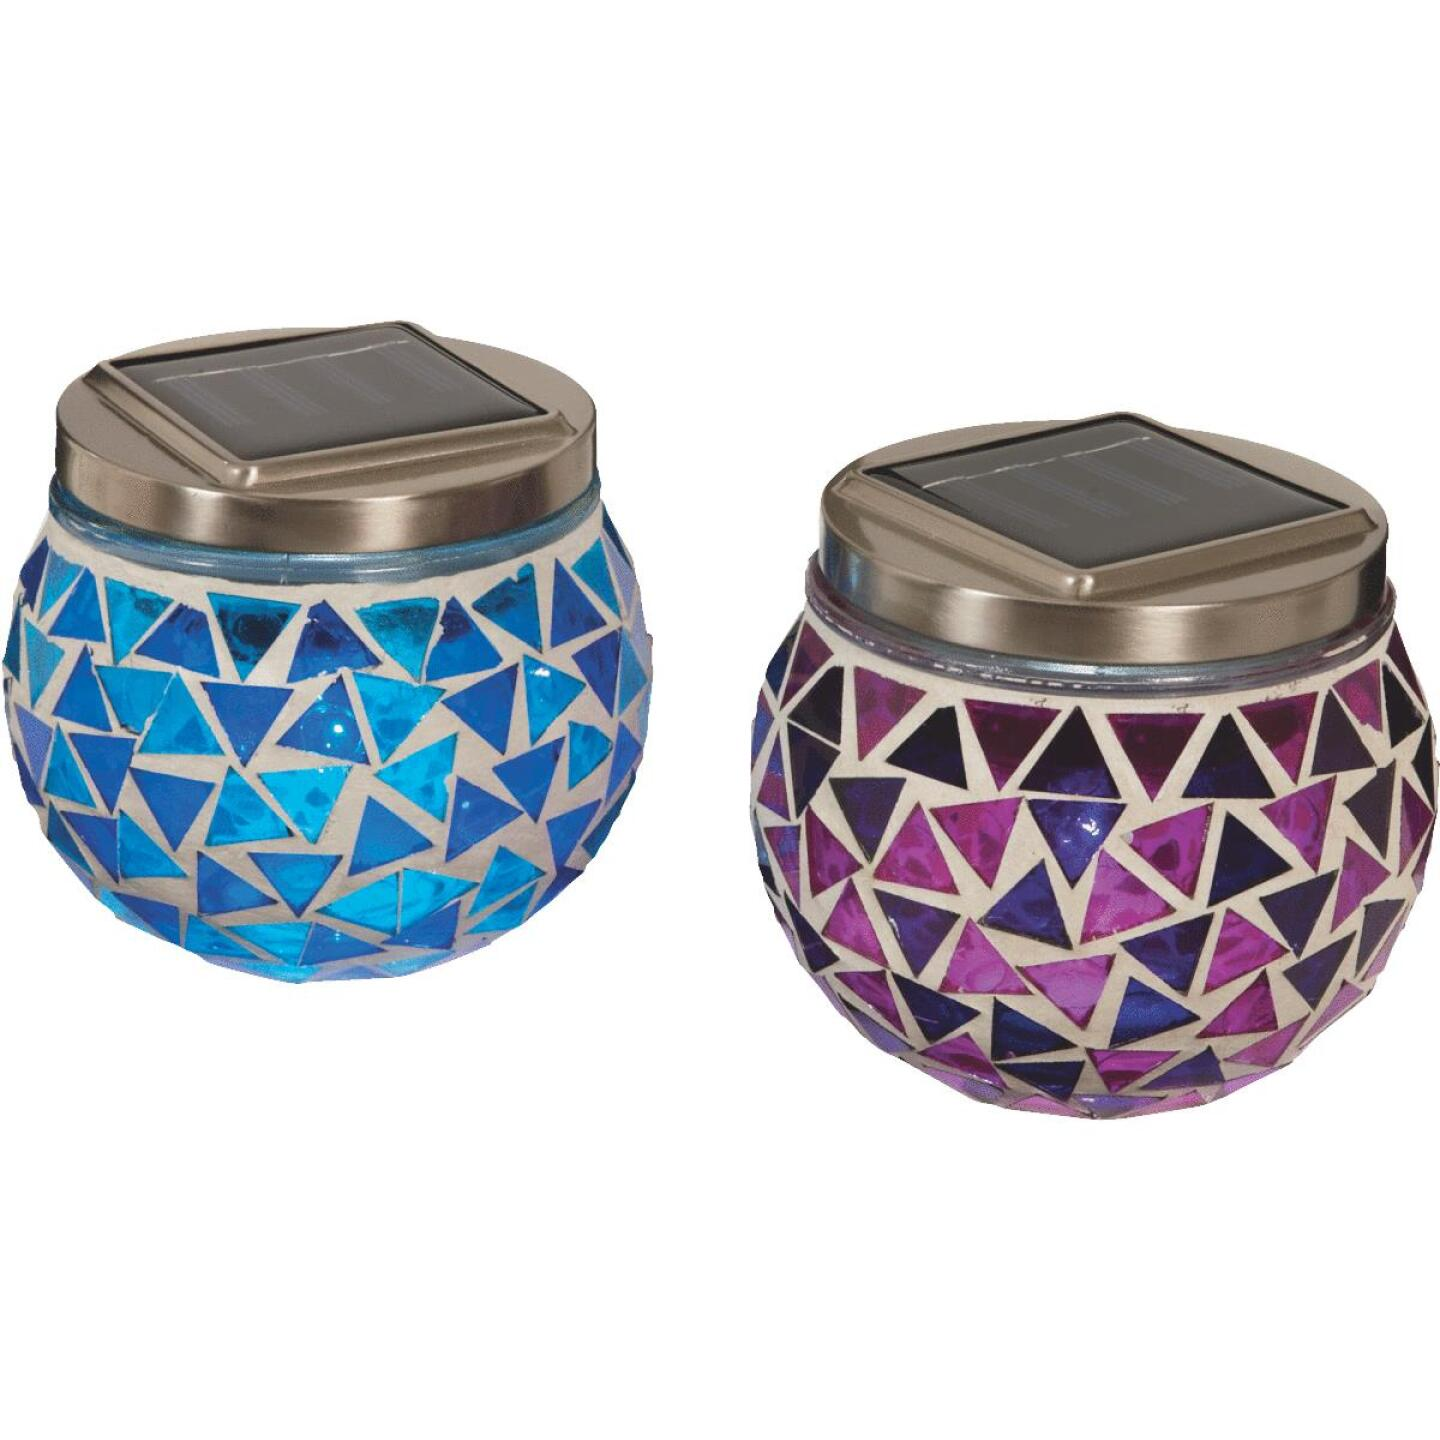 Outdoor Expressions 3.5 In. H. x 3.5 In. Dia. Blue or Purple Tile Tabletop Solar Patio Light Image 1